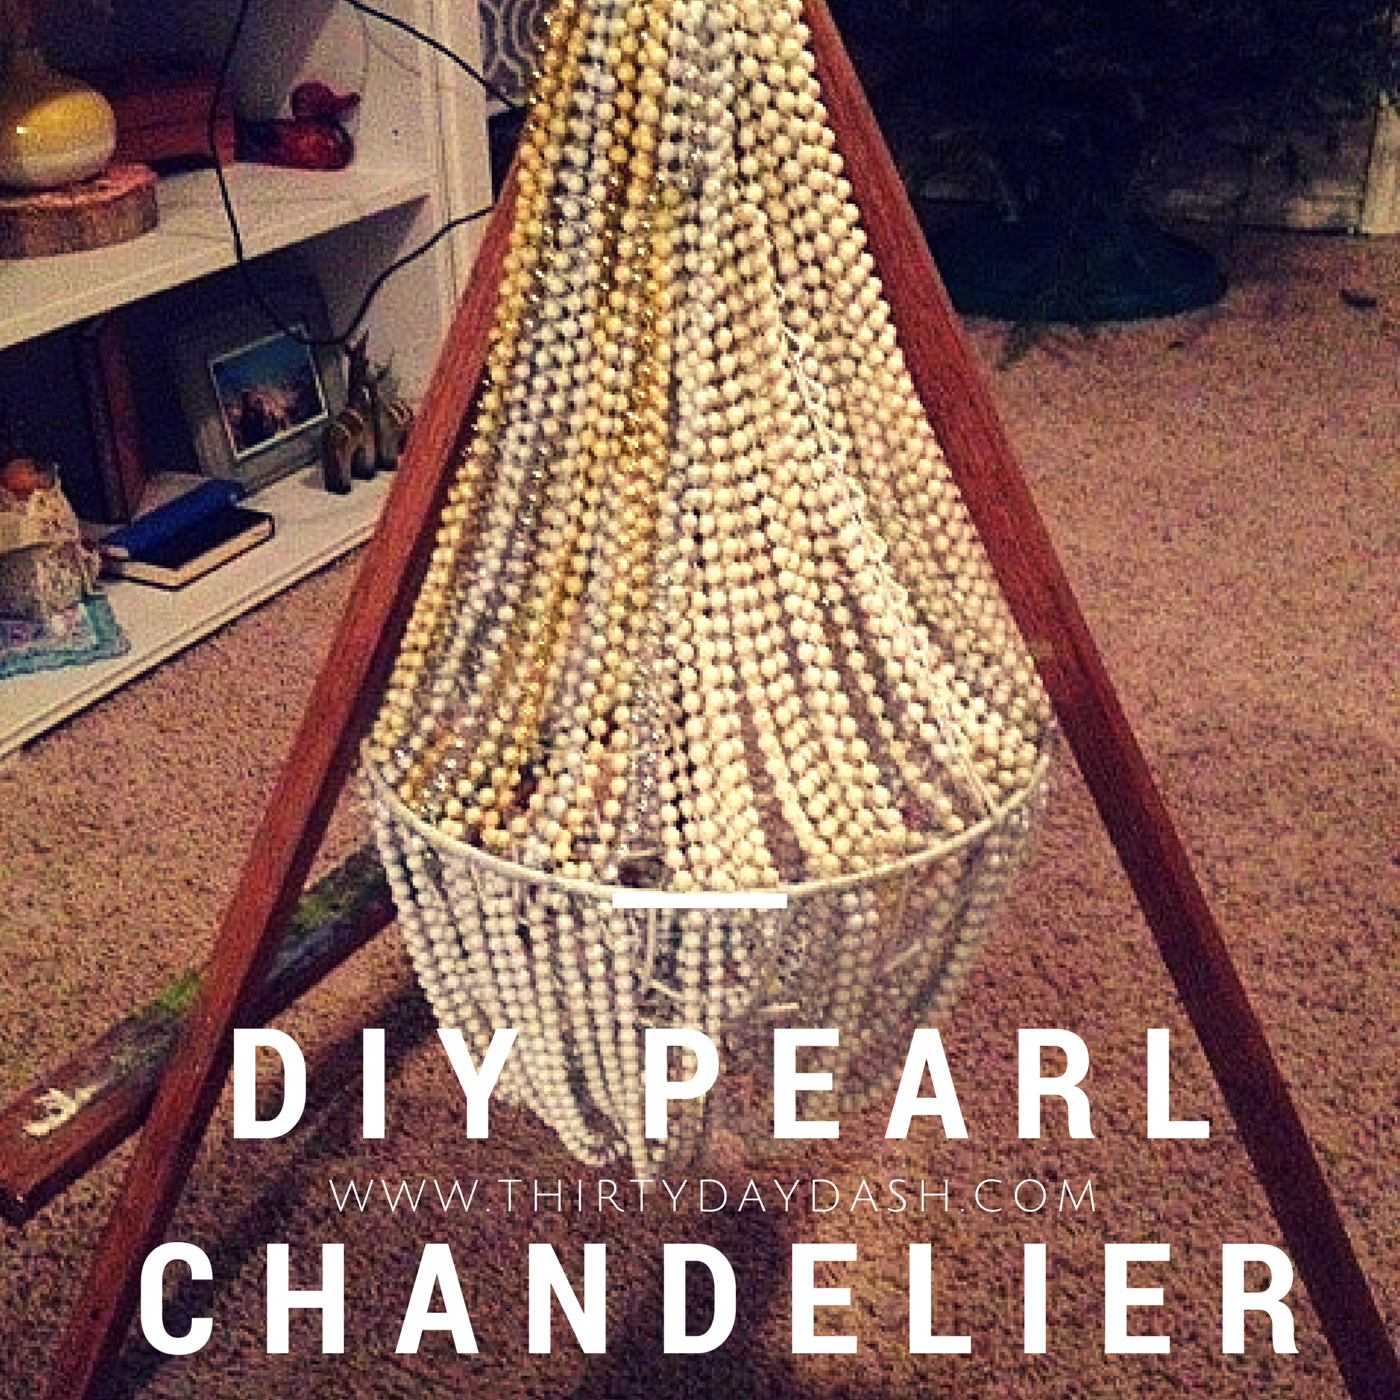 Dollar store crafts diy chandelier for your roaring 20s style diy chandelier for your roaring 20s style party check arubaitofo Image collections